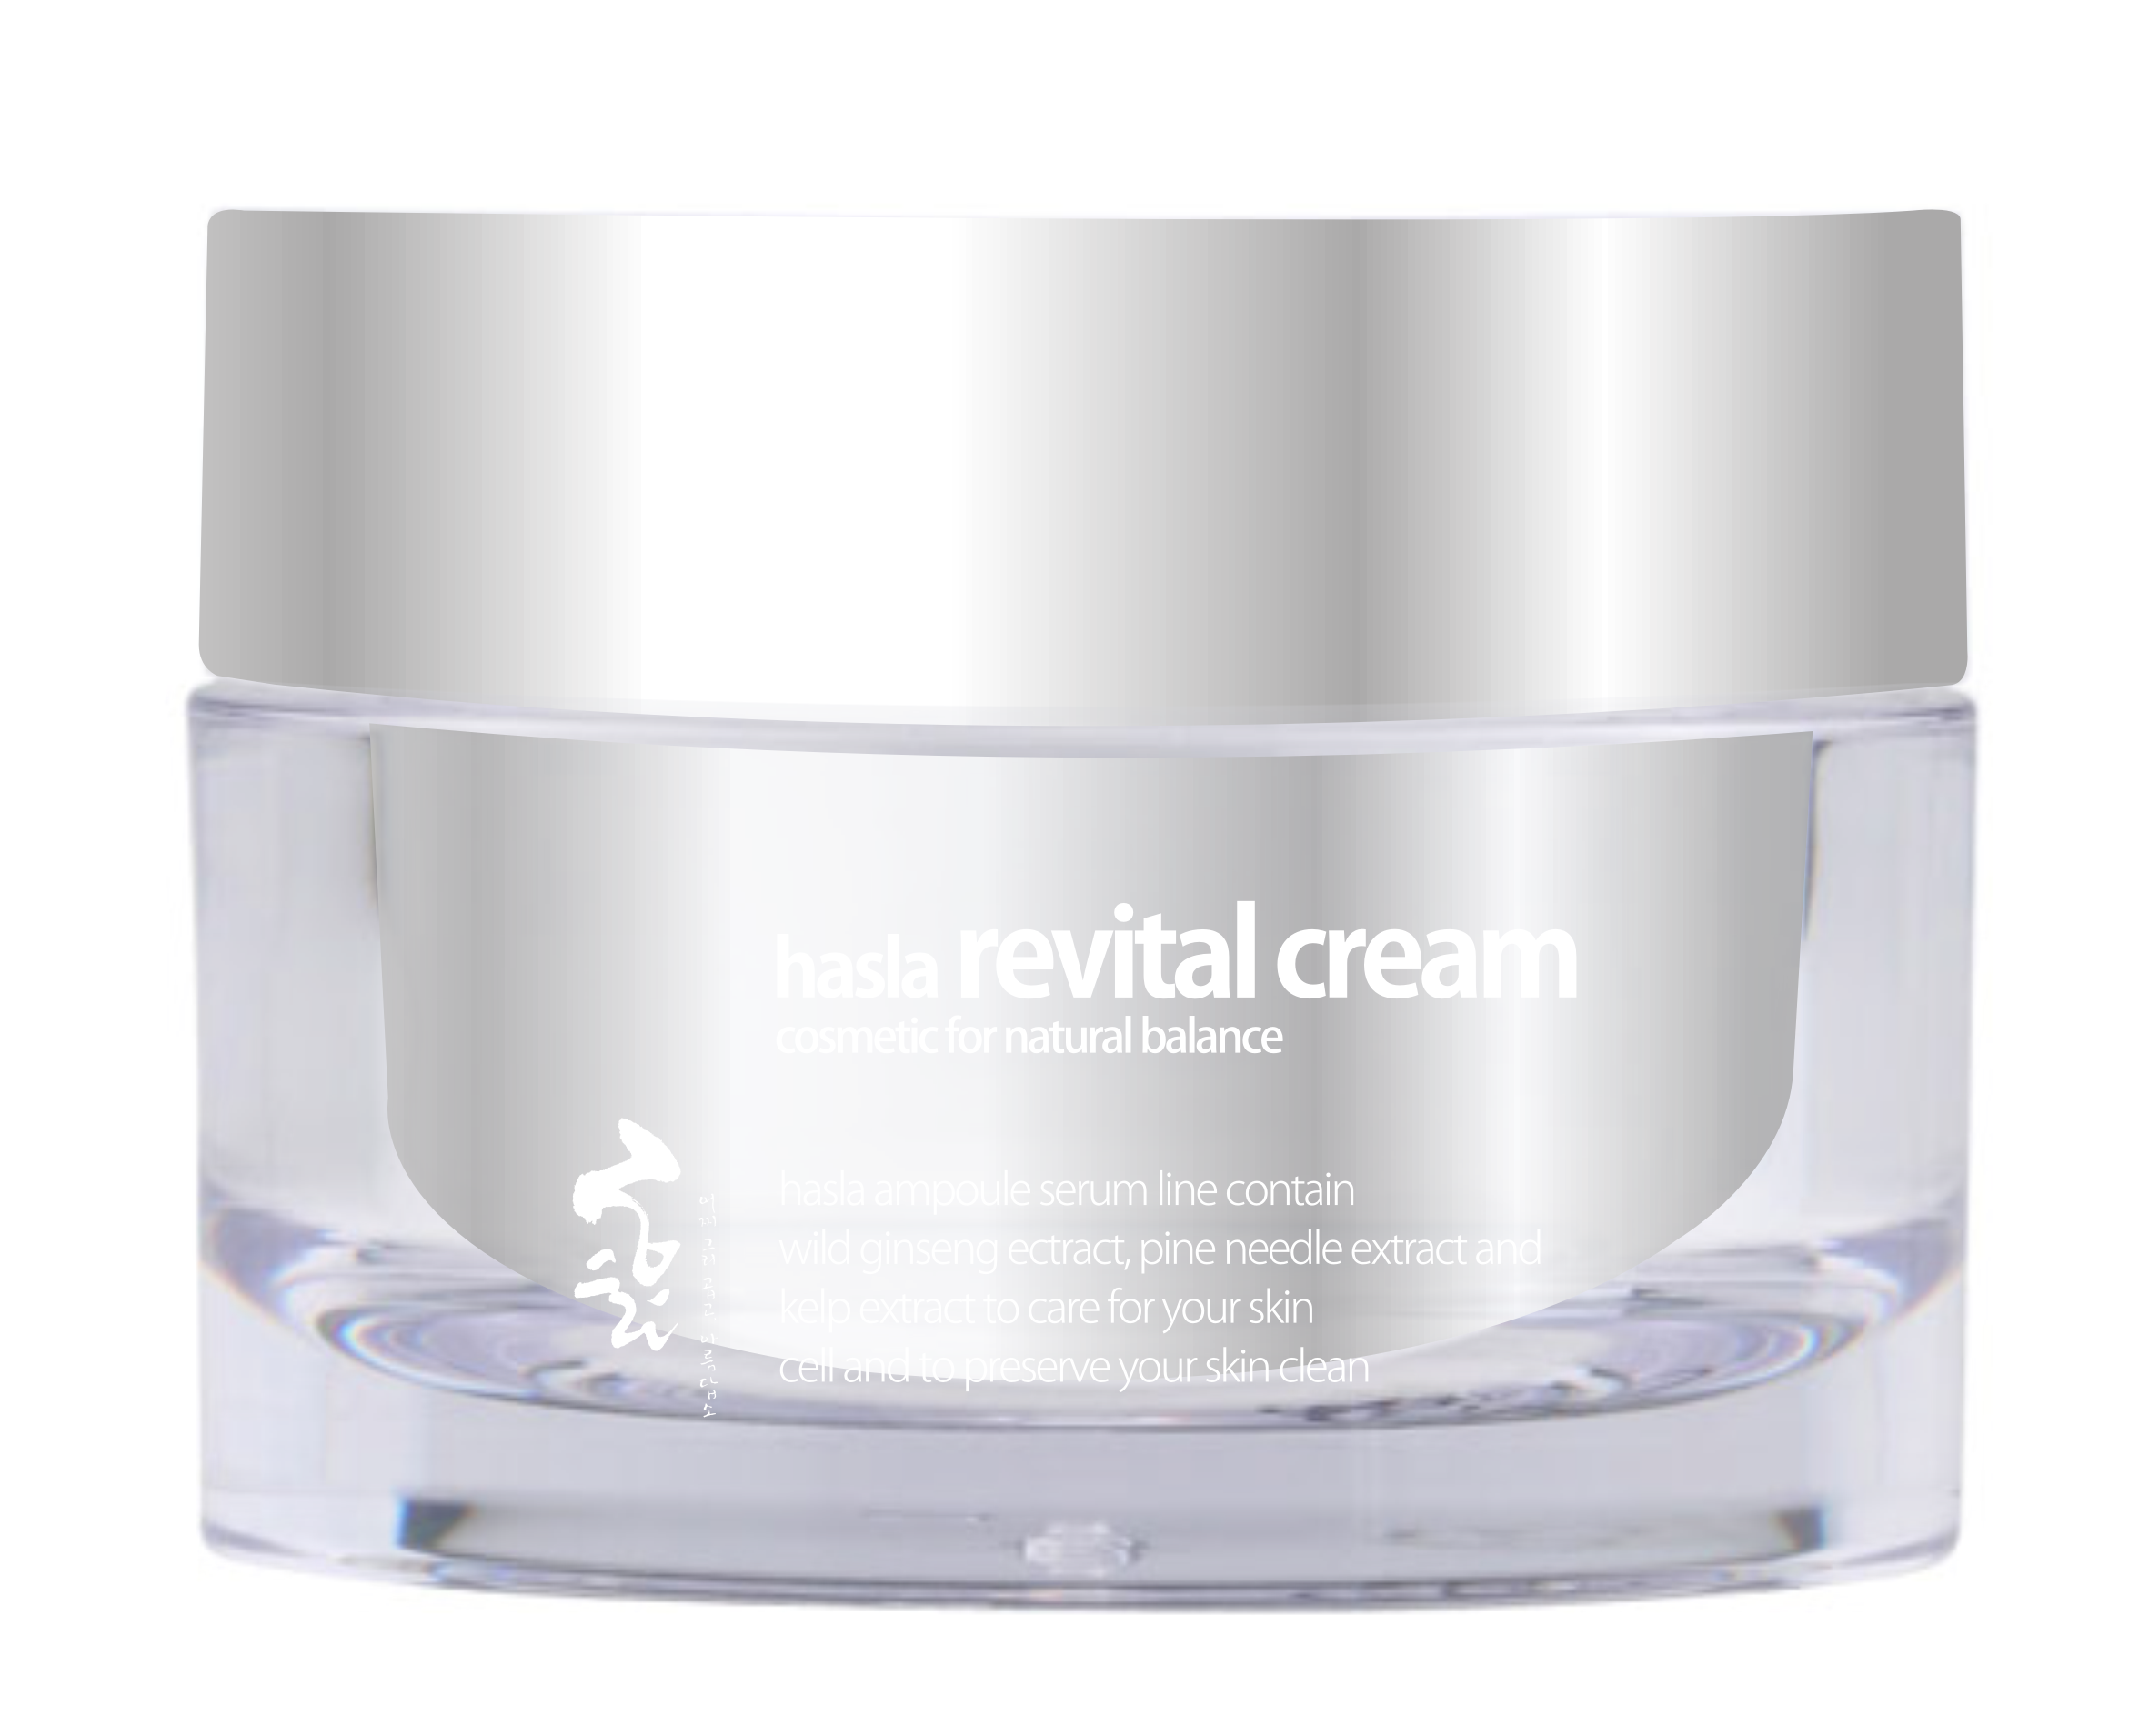 HASLA Revital Cream